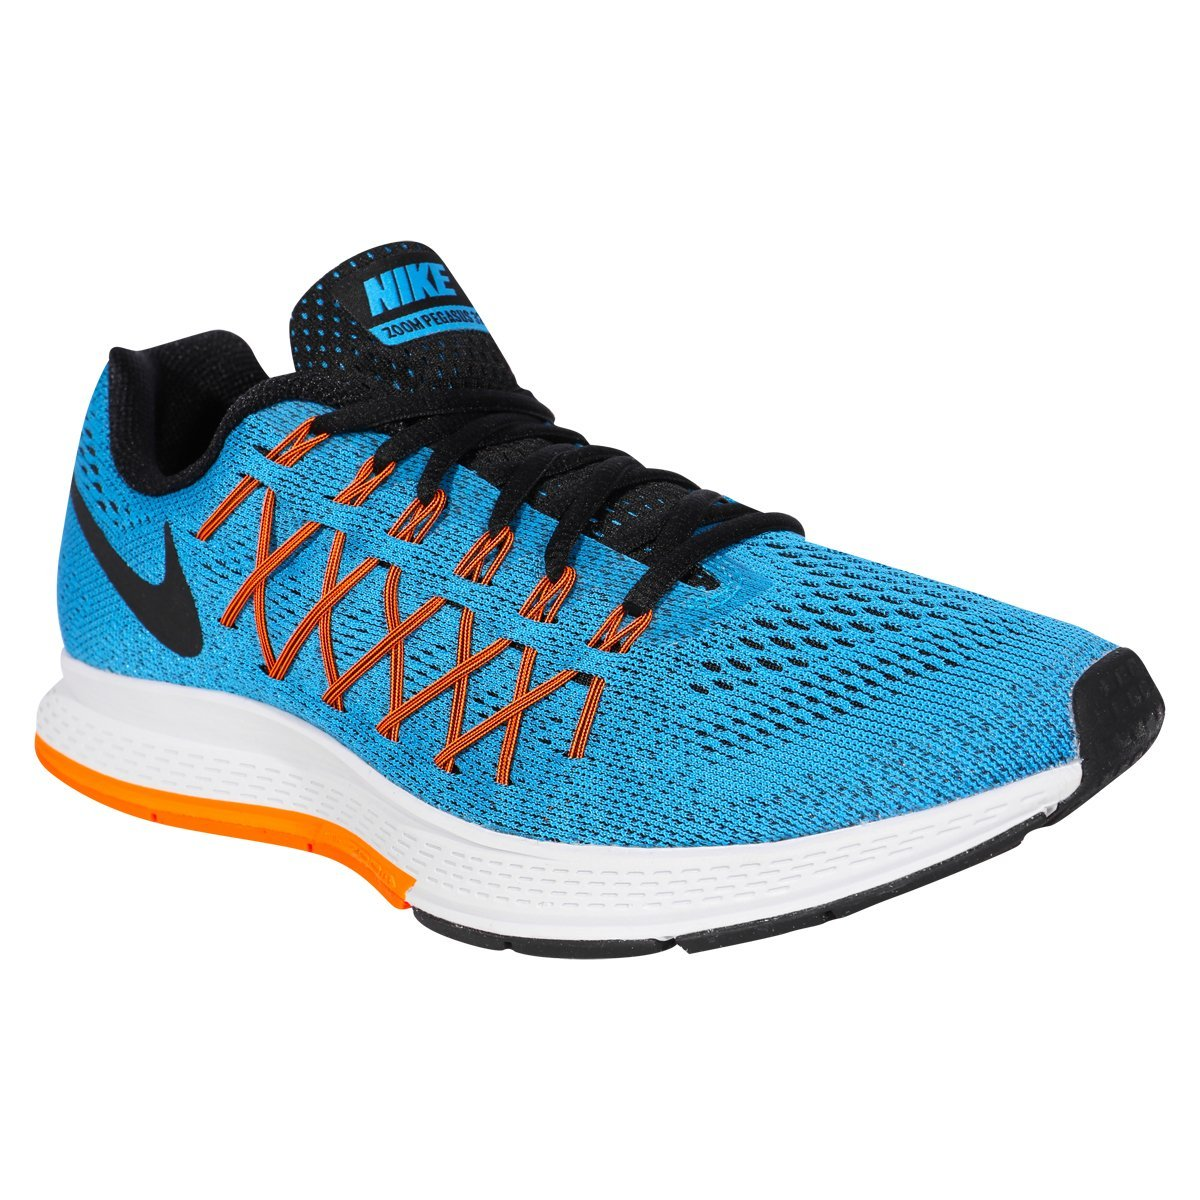 797d874d2025 Galleon - Nike Air Zoom Pegasus 32 Men s Running Shoes 11 B - Narrow